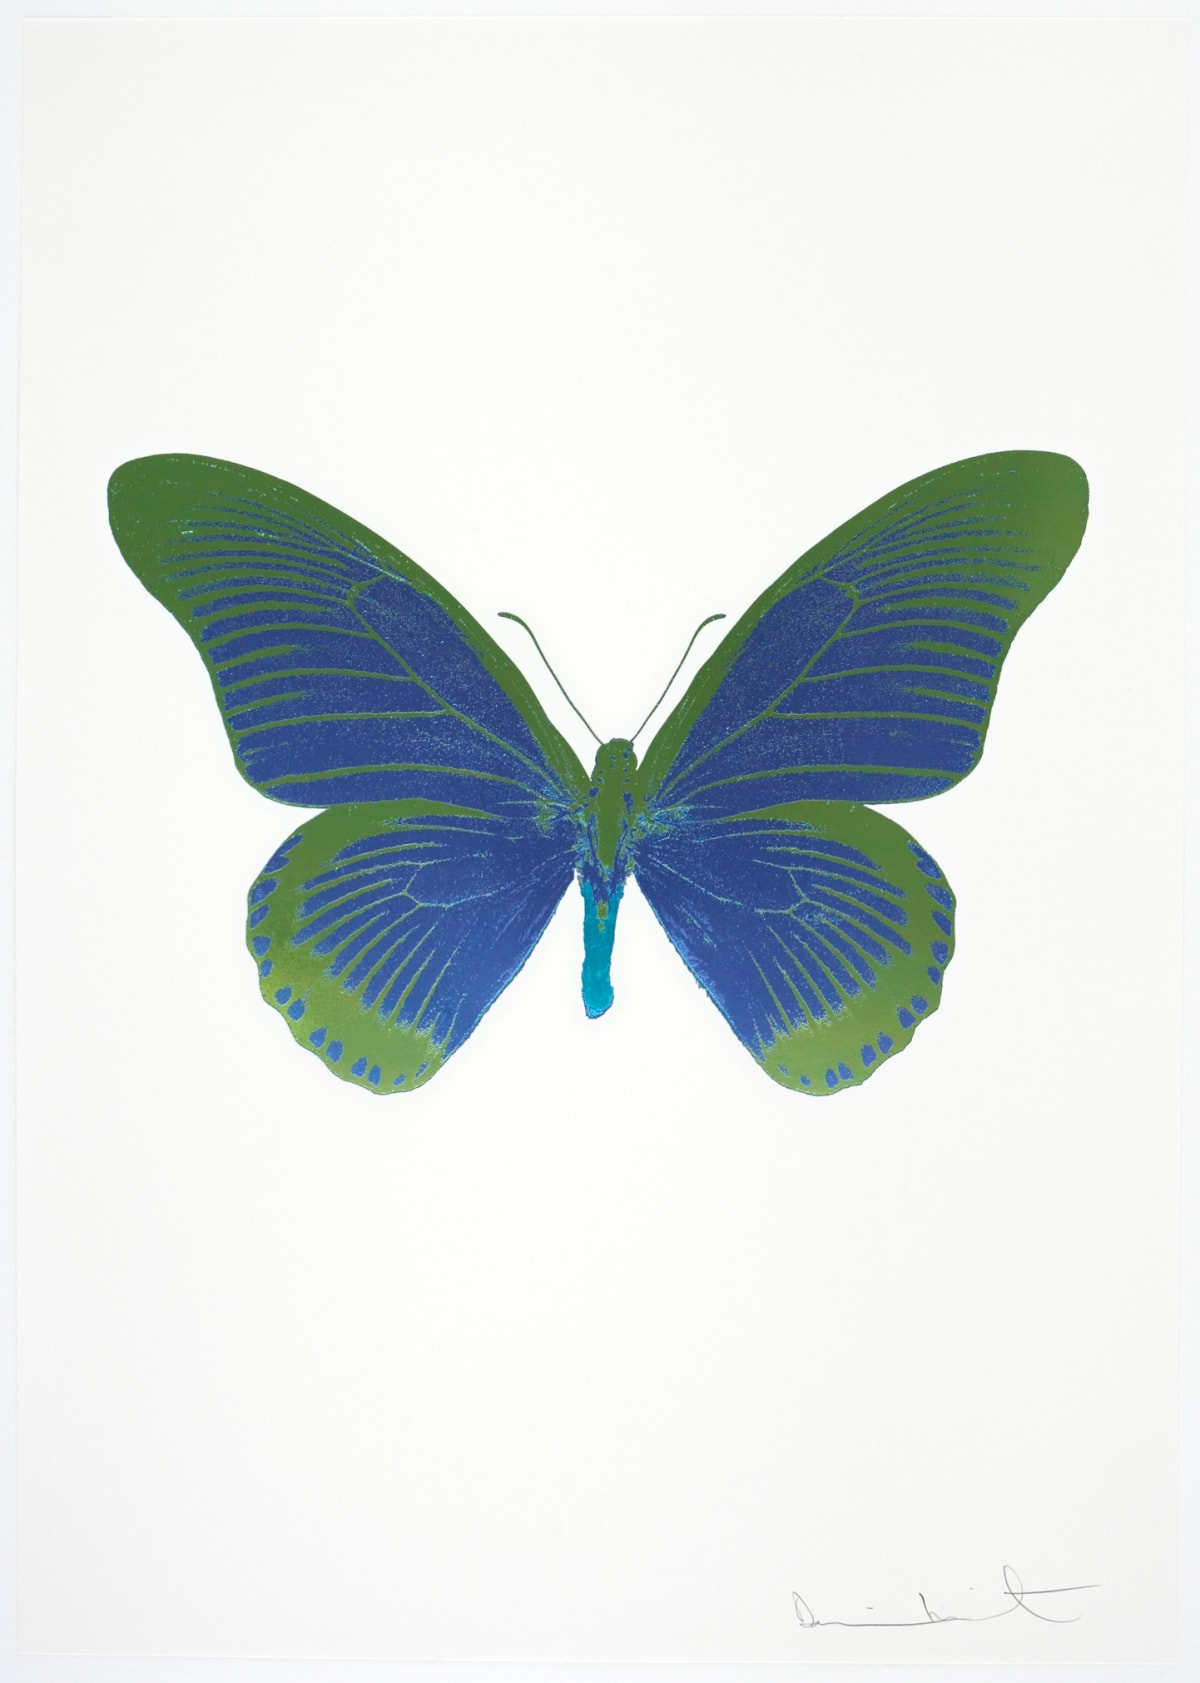 Damien Hirst The Souls IV - Frost Blue/Leaf Green/Topaz, 2010 3 colour foil block on 300gsm Arches 88 archival paper. Signed and numbered. Published by Paul Stolper and Other Criteria 72 x 51cm OC8055 / 1418-78 Edition of 15